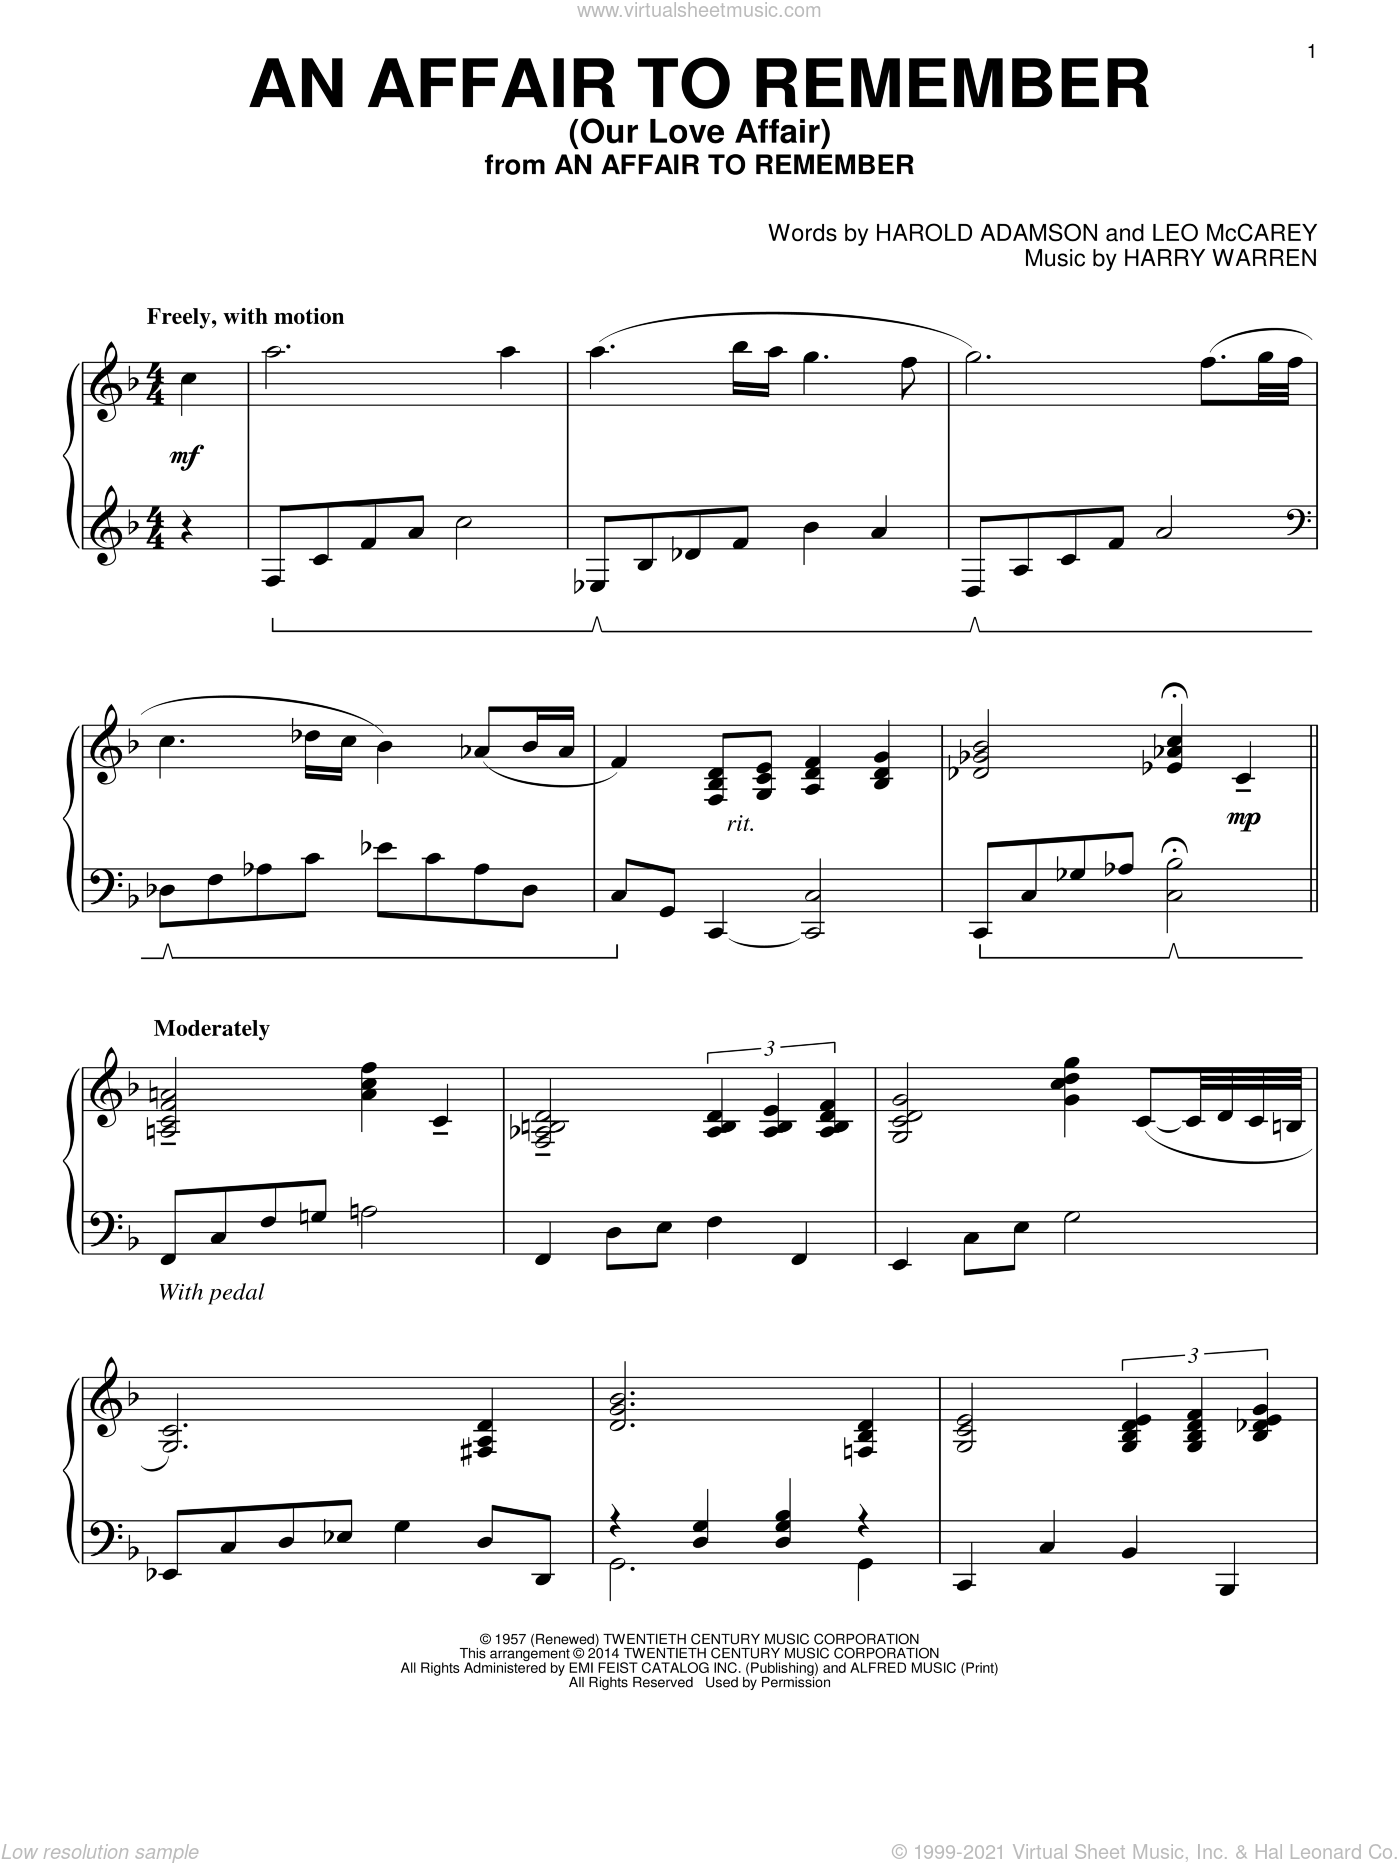 An Affair To Remember (Our Love Affair) sheet music for piano solo by Harry Warren, Harold Adamson and Leo McCarey, intermediate. Score Image Preview.